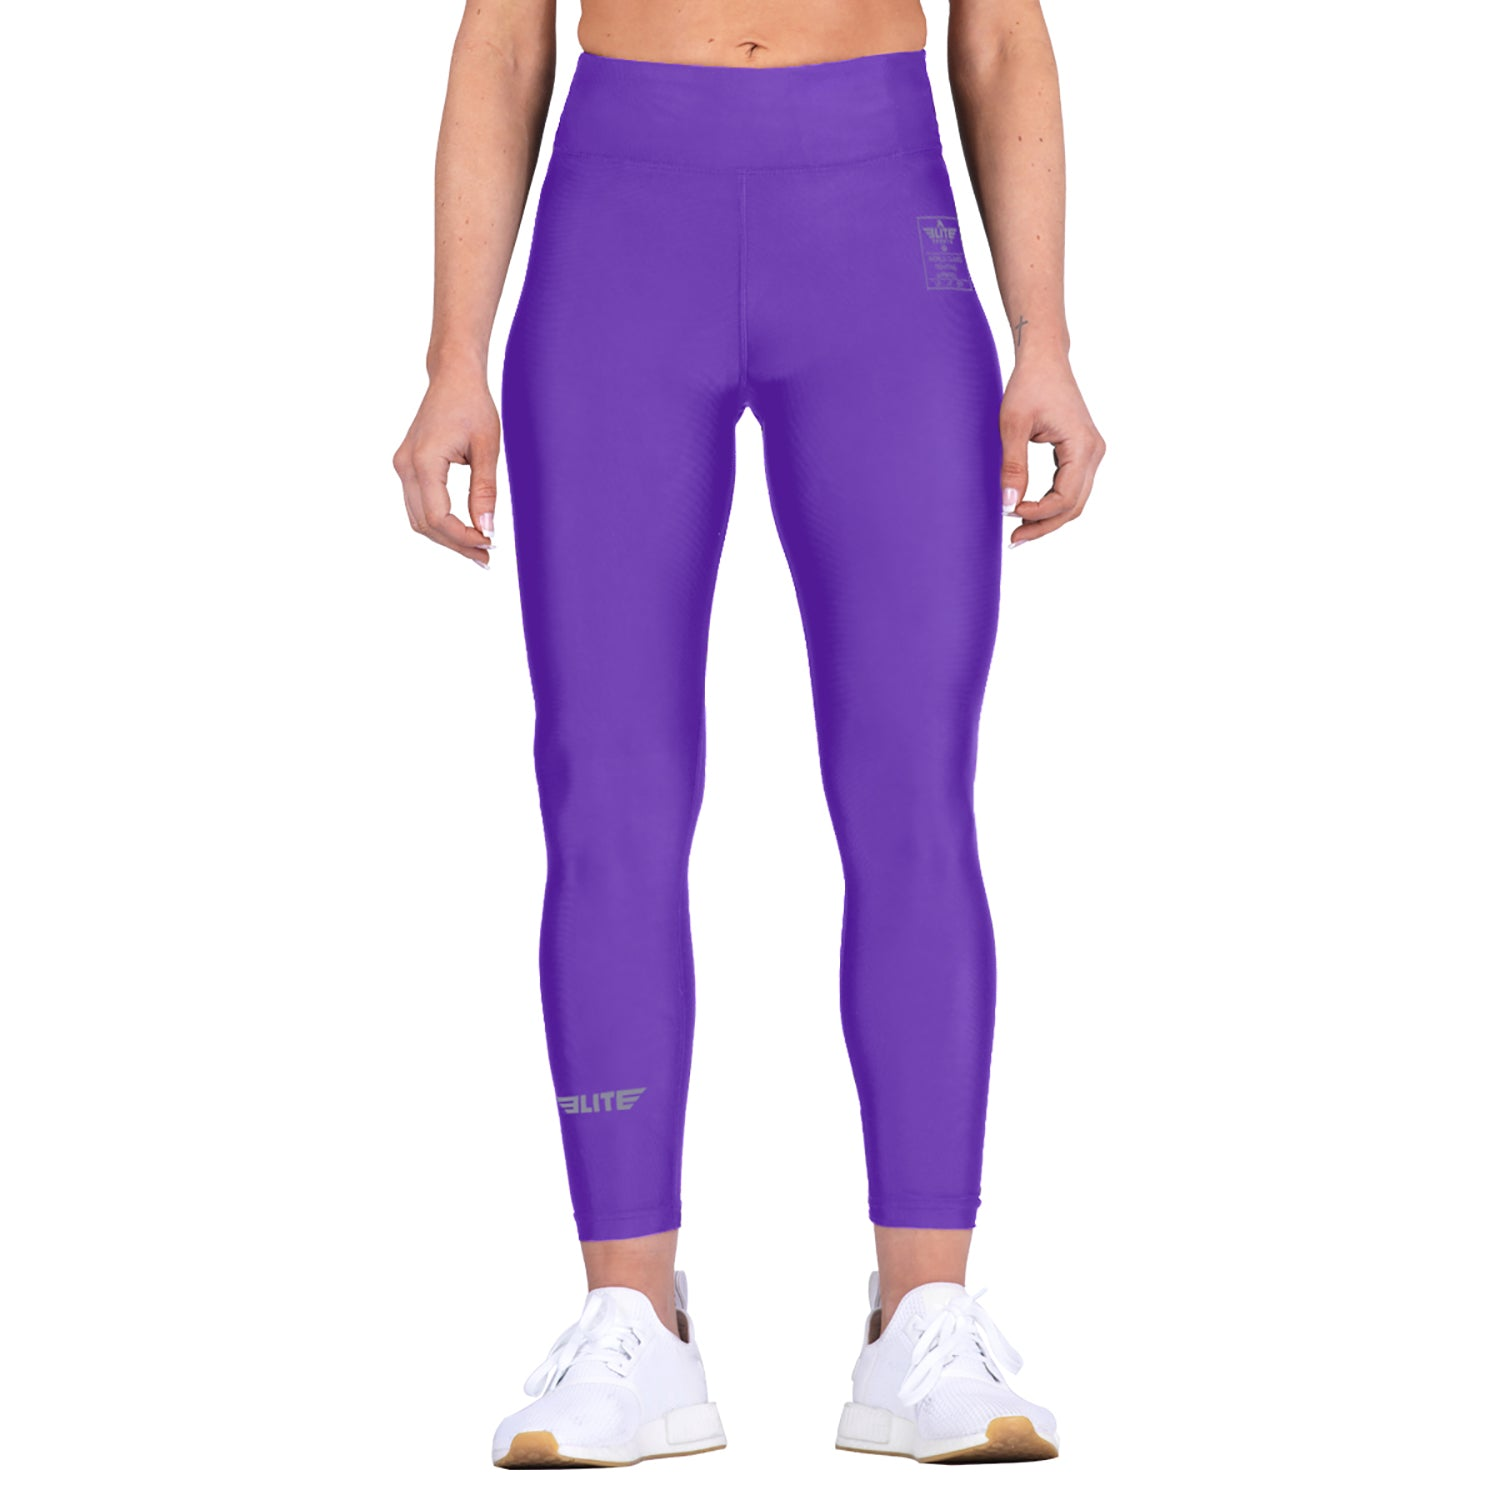 Elite Sports Purple Women Compression Muay Thai Spat Pants